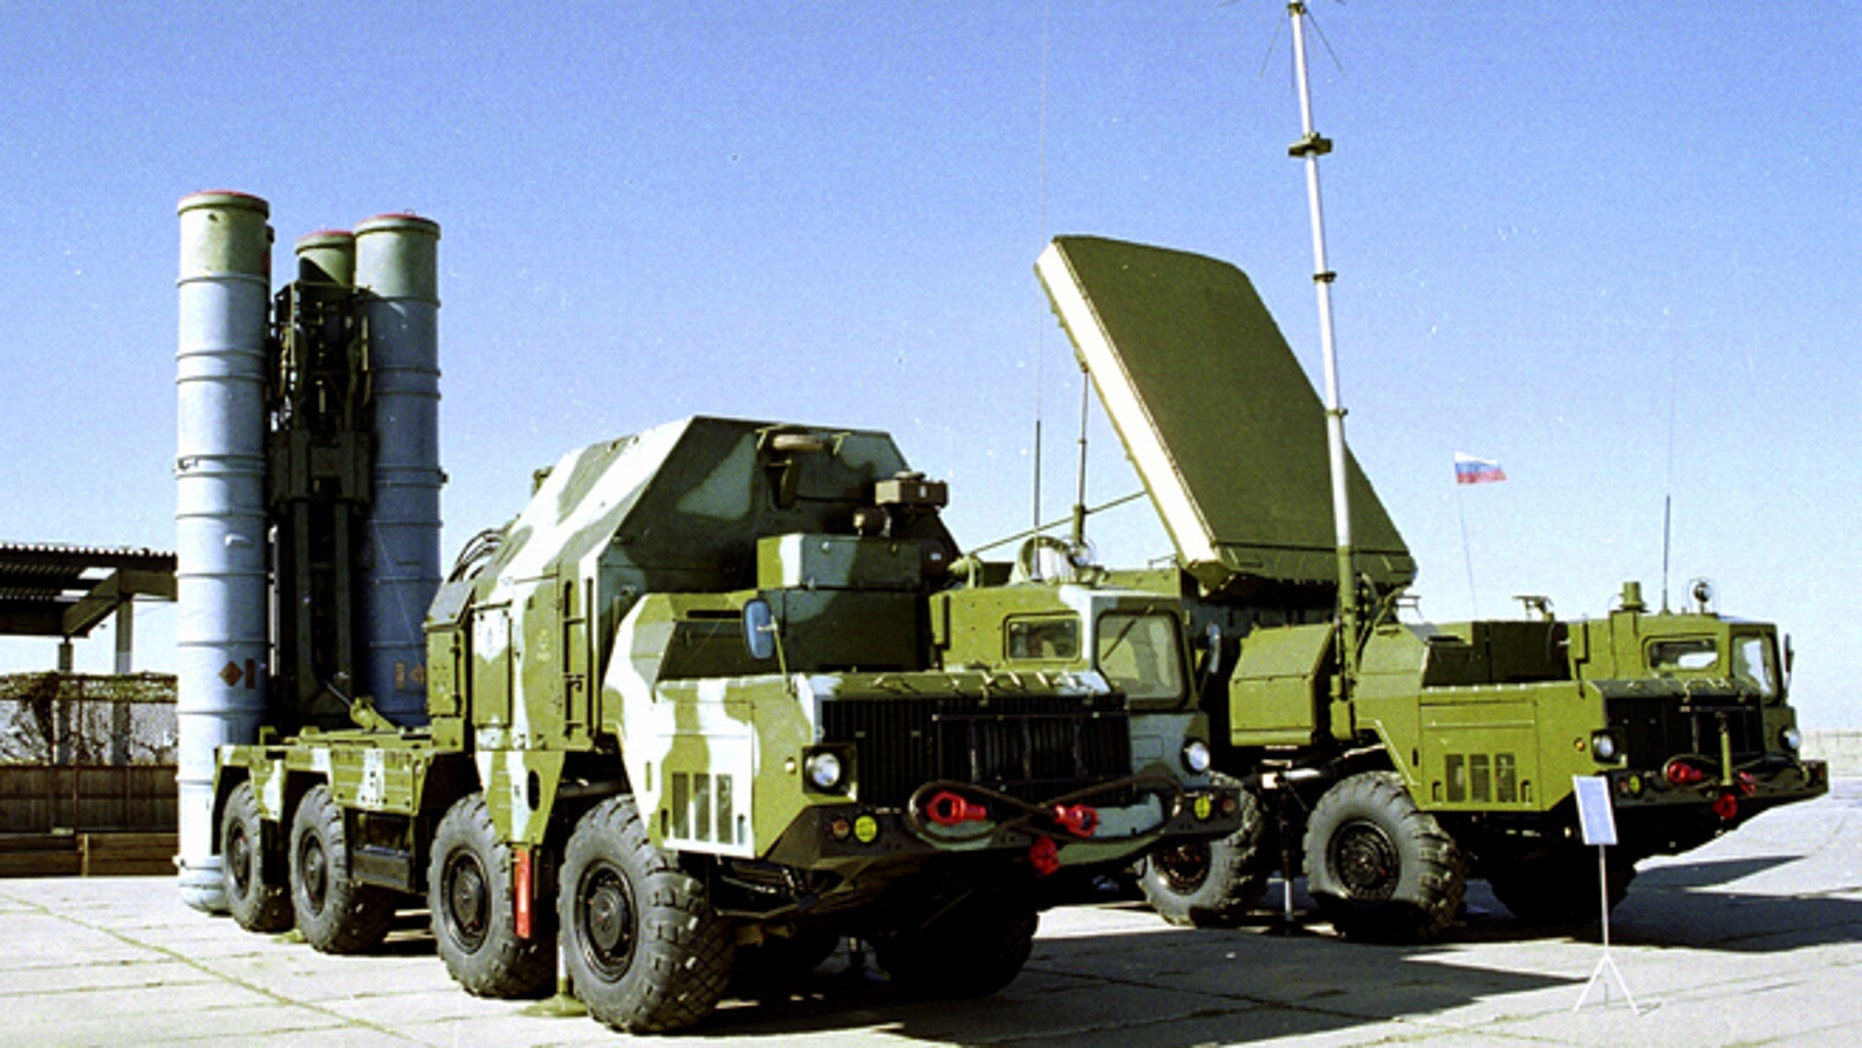 FILE - In this undated file photo a Russian S-300 anti-aircraft missile system is on display in an undisclosed location in Russia.